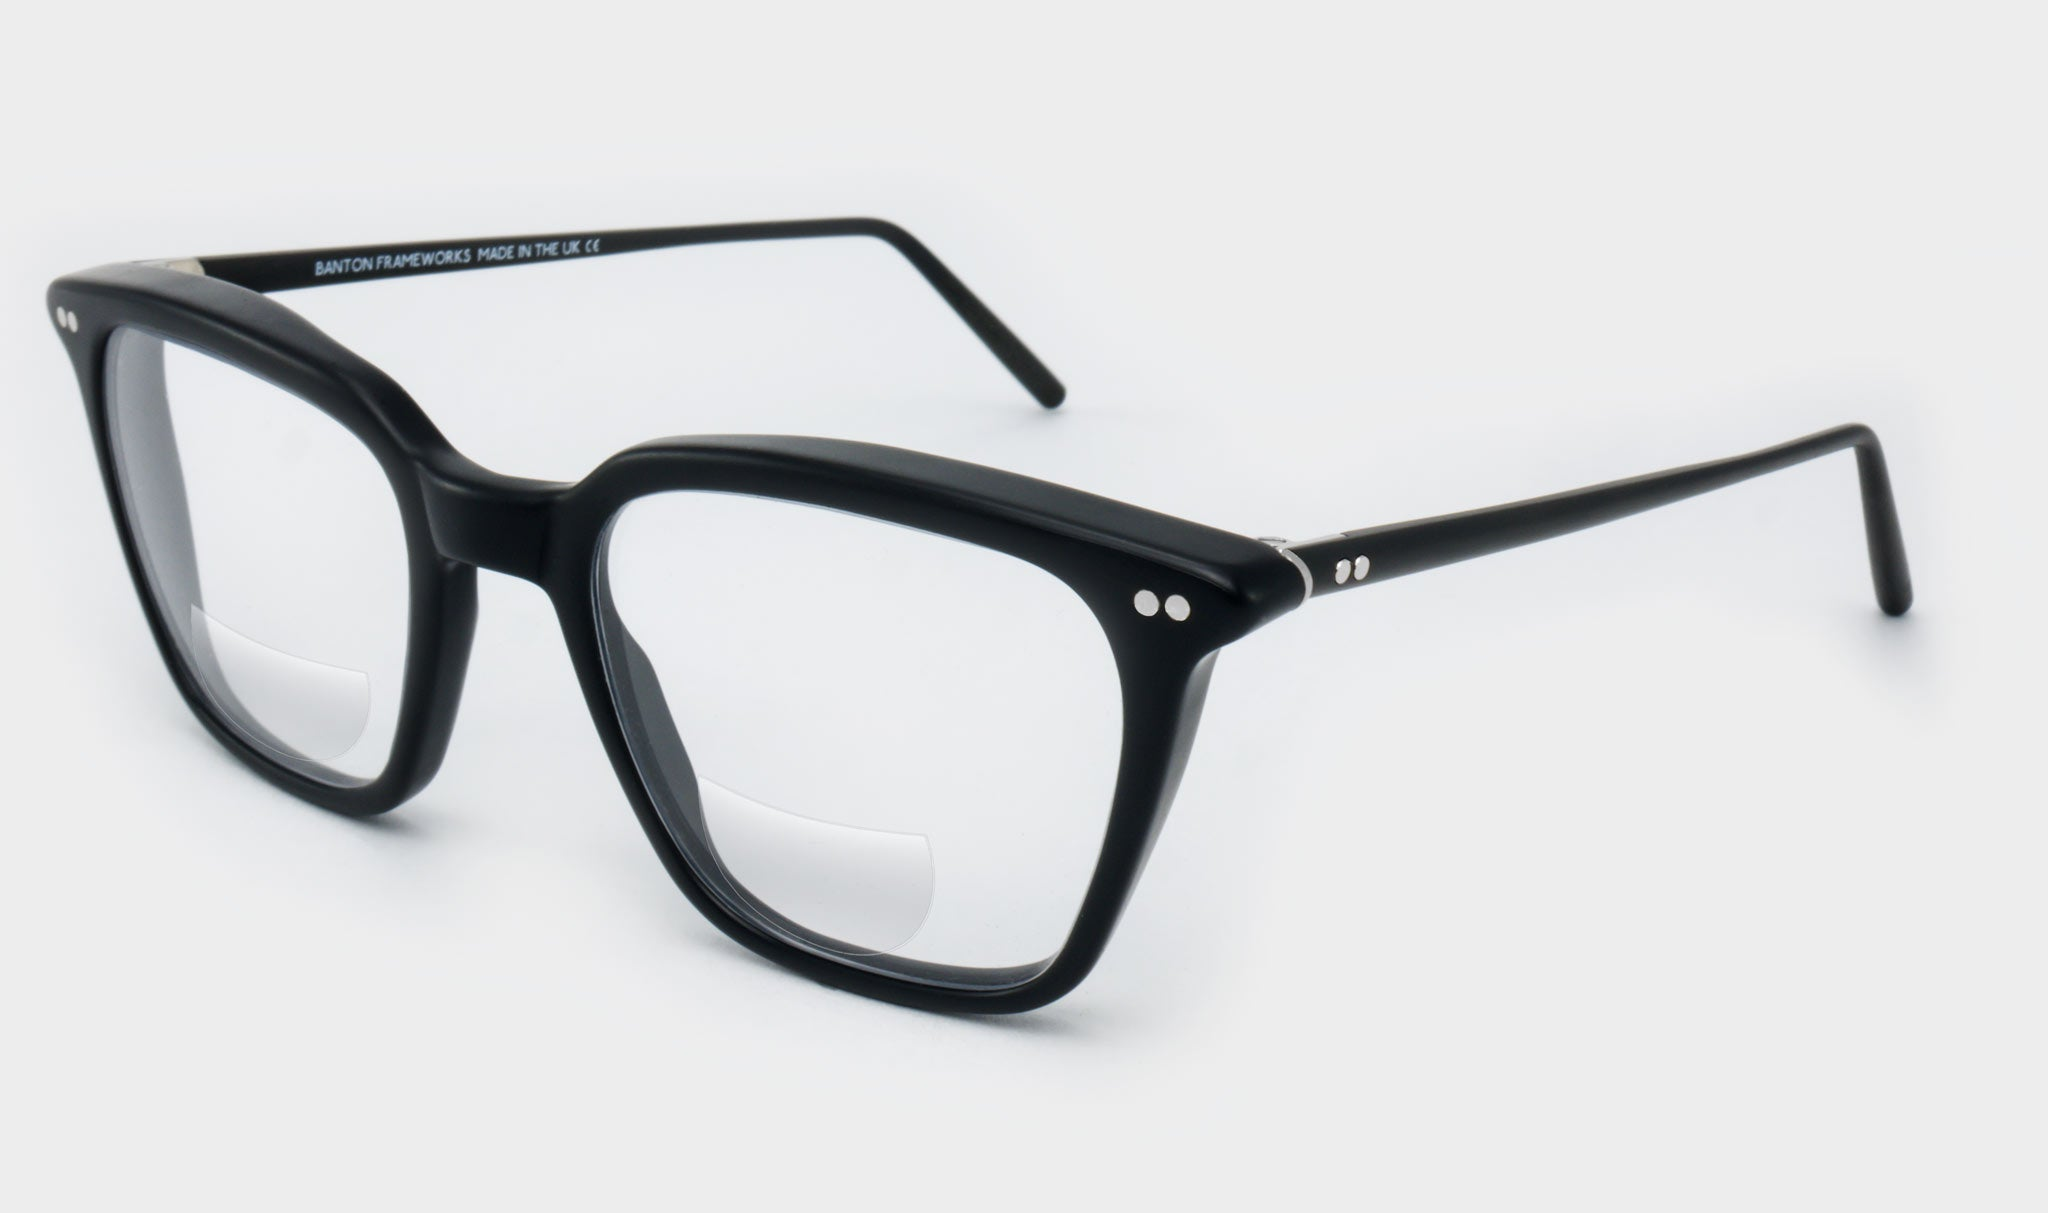 Bifocal-small-square-black-glasses-Side-View